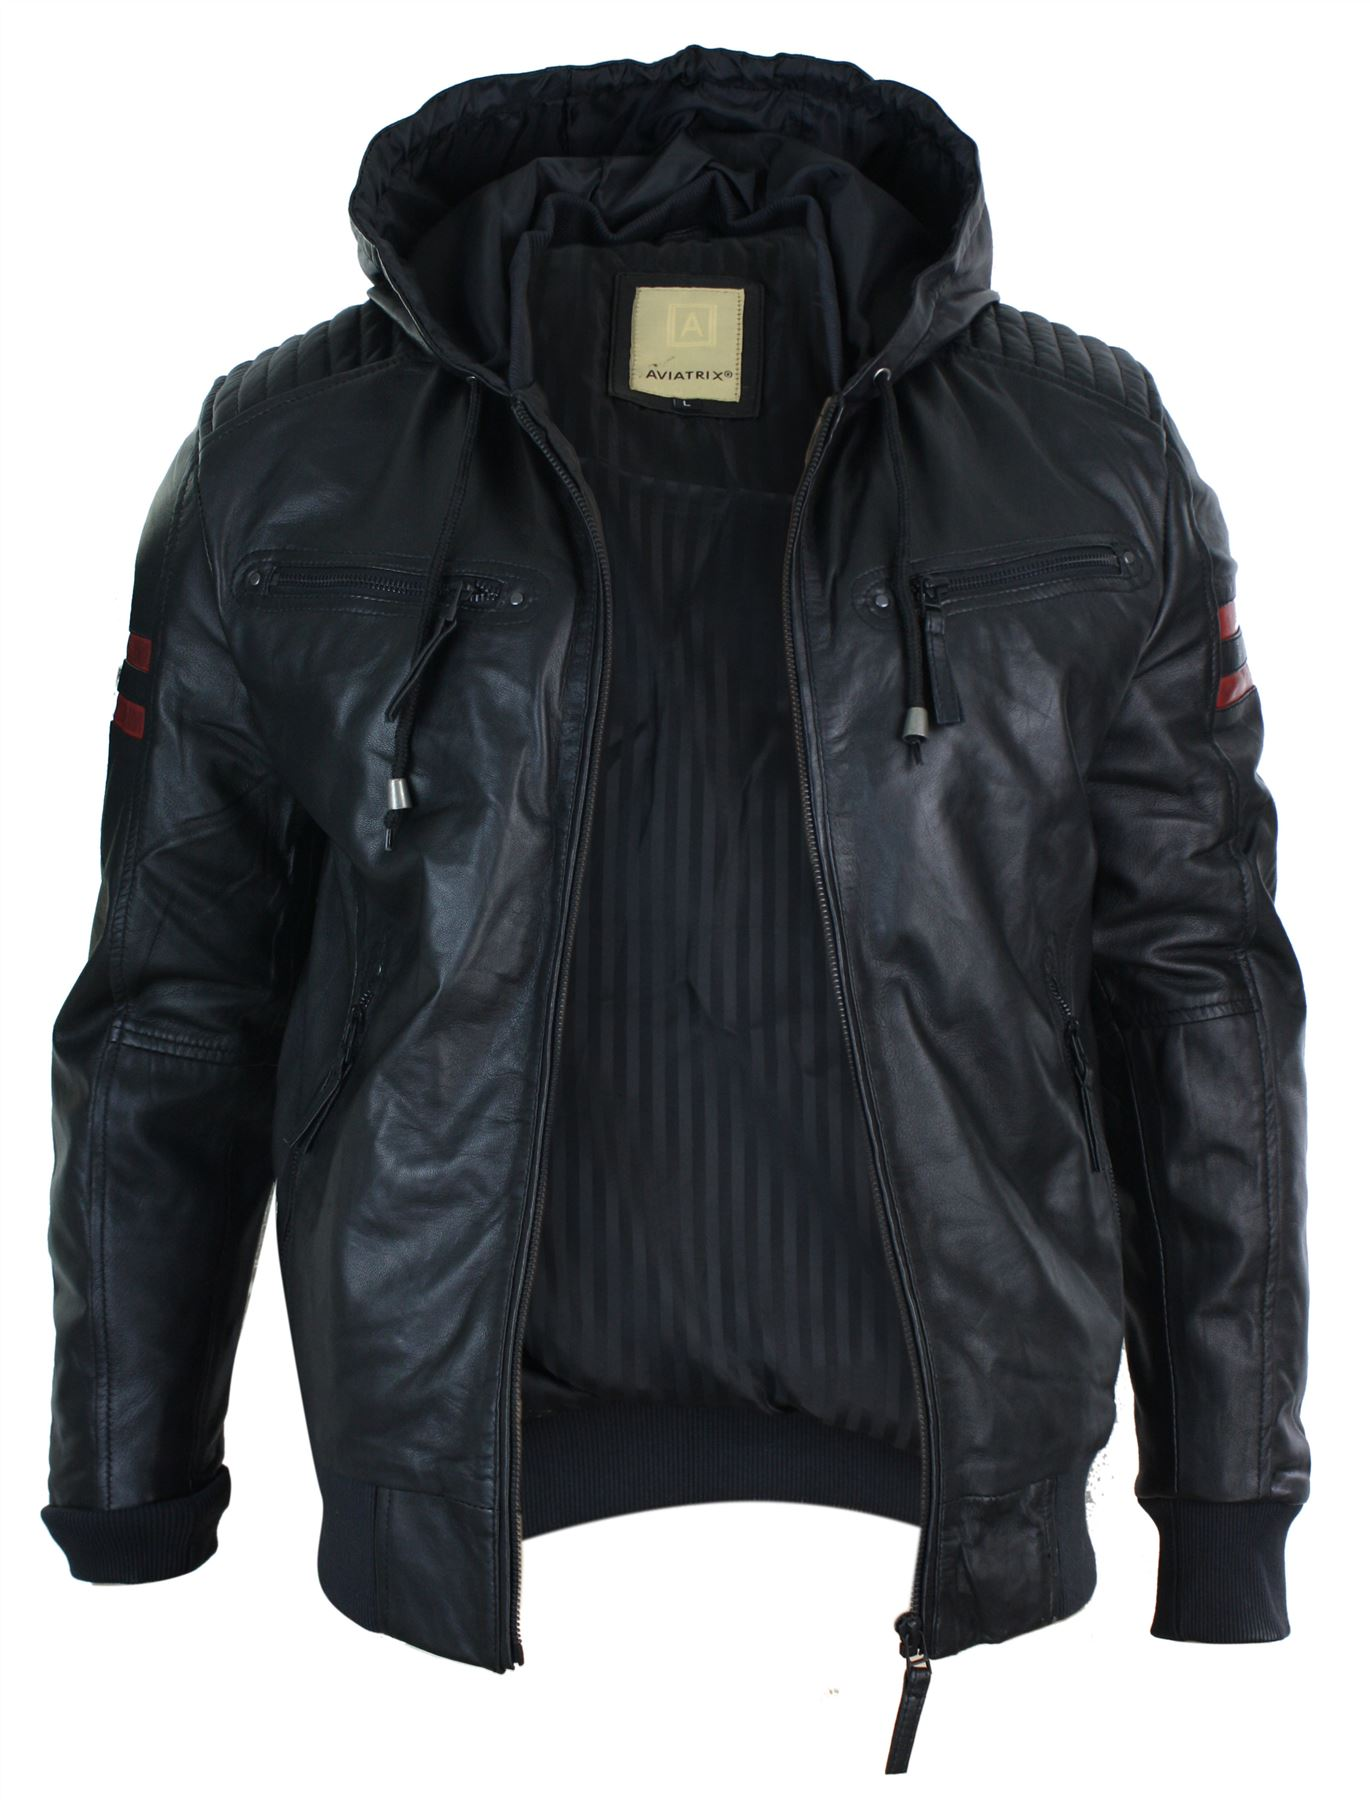 Mens-Black-Hood-Real-Leather-Bomber-Jacket-Red-Stripes-Quilted-Slim-Fit-Casual miniature 3